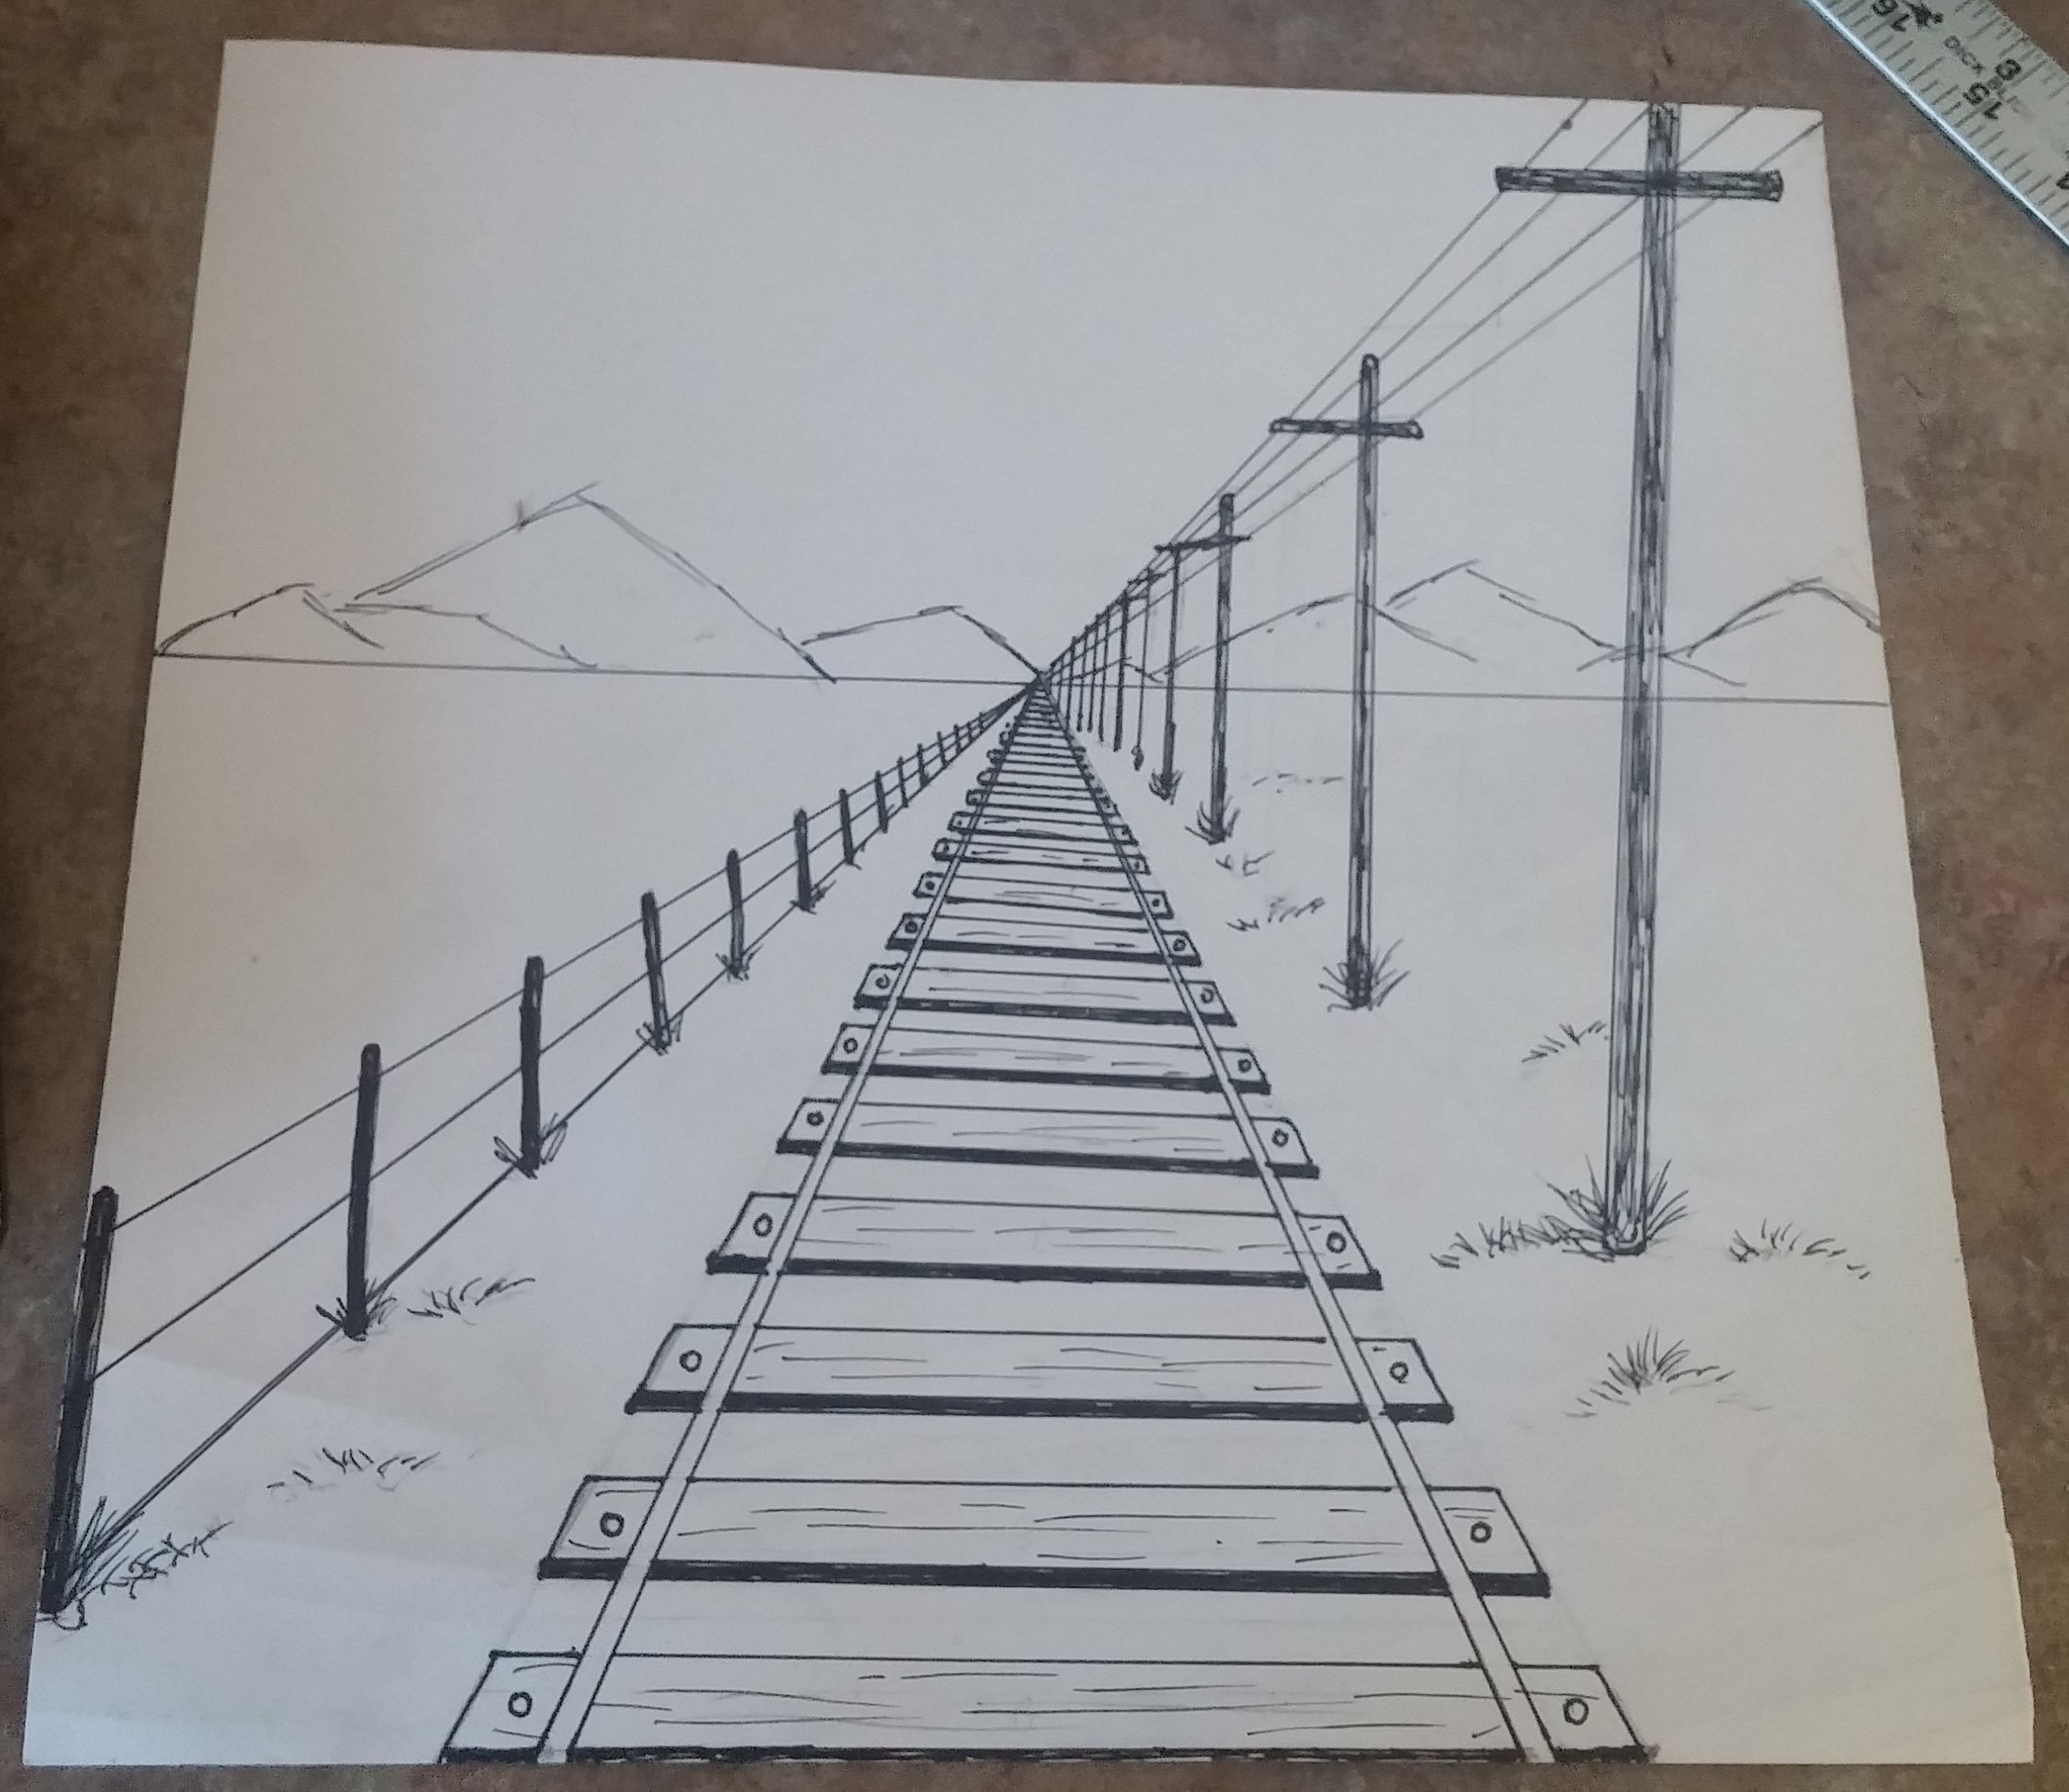 How To Draw A 1 Point Perspective Railroad